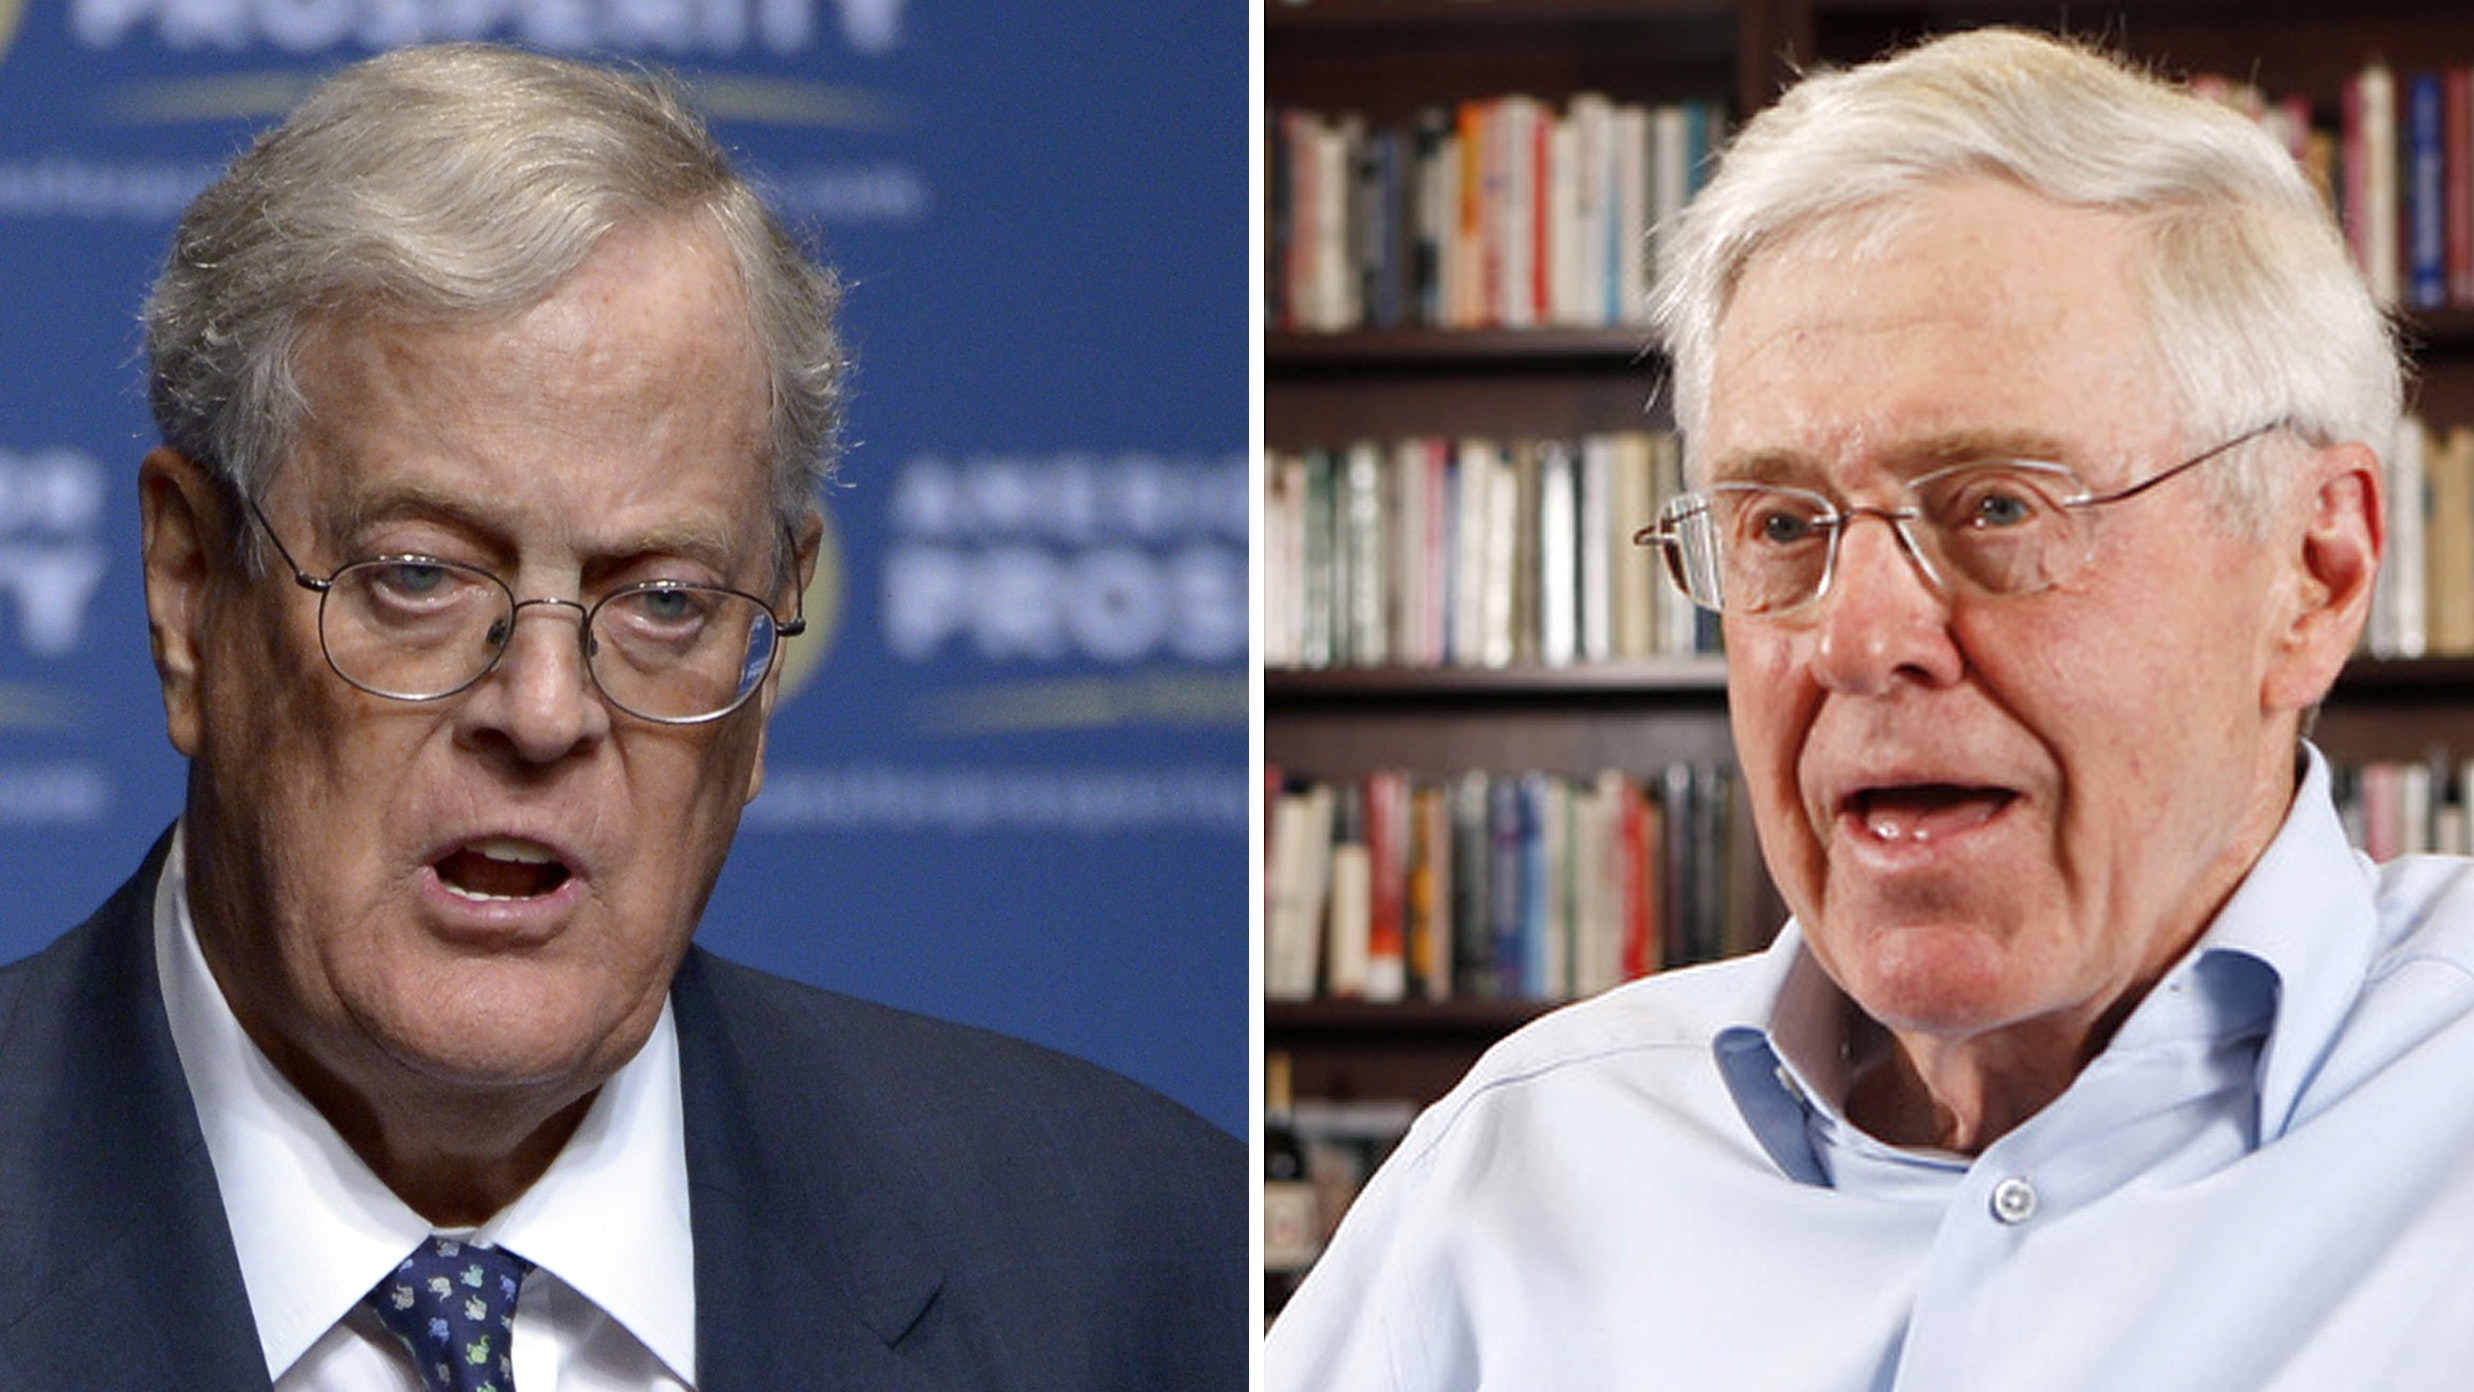 Trump slams billionaire conservative Koch brothers as